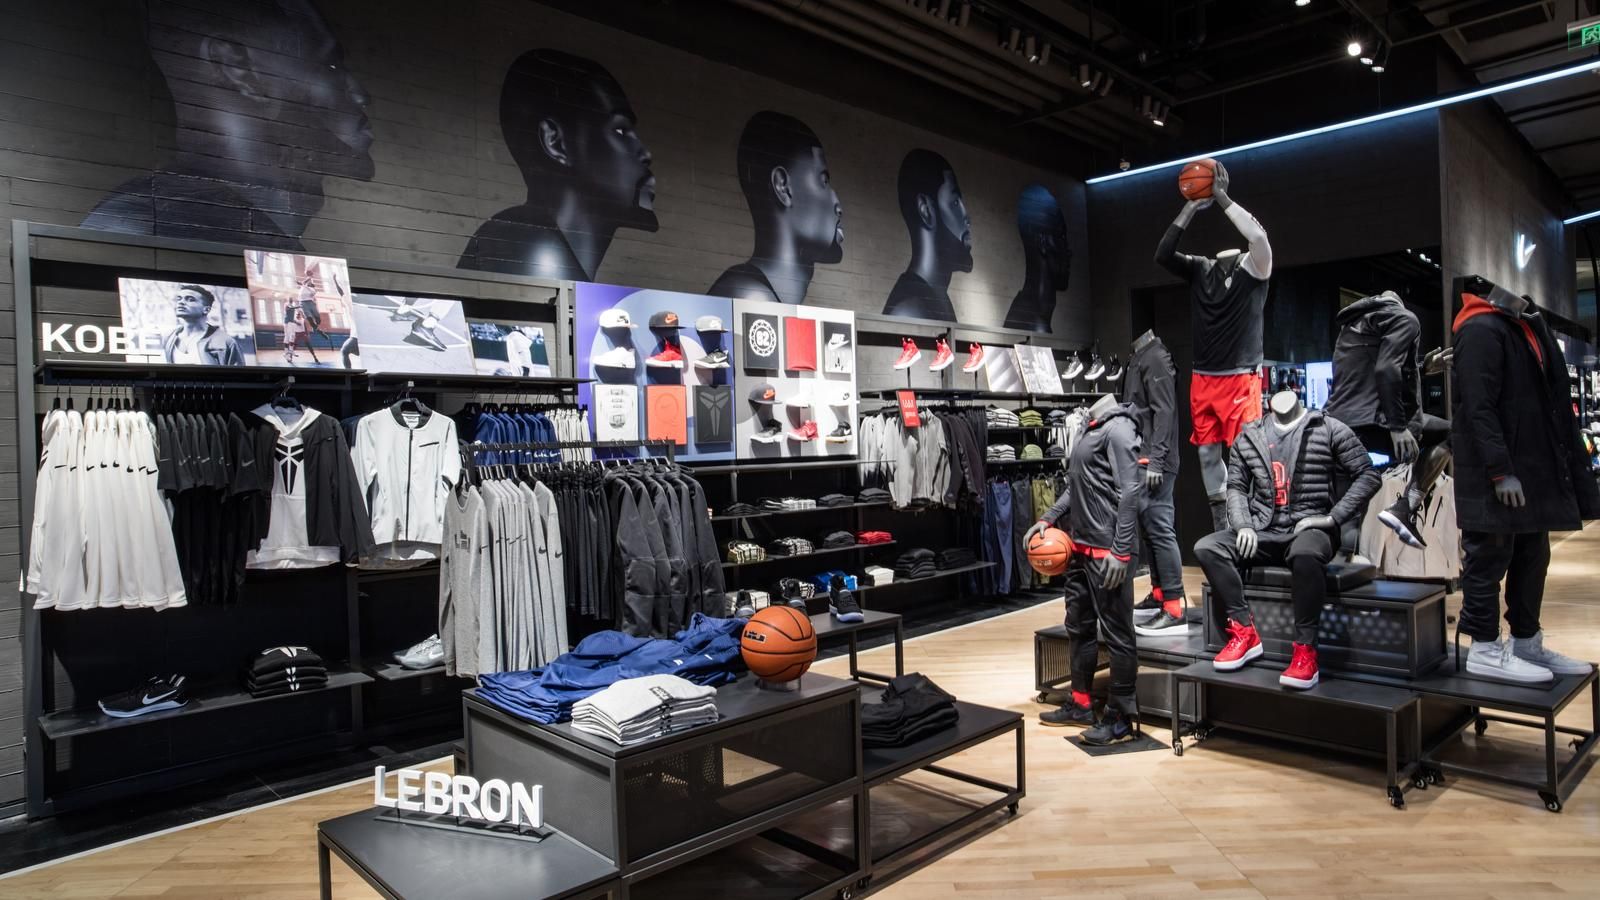 Nike Basketball Apparel Display Painted Portraits Of LeBron James Kevin Durant Paul George Kyrie Irving And Kobe Bryant Sit Above The Latest